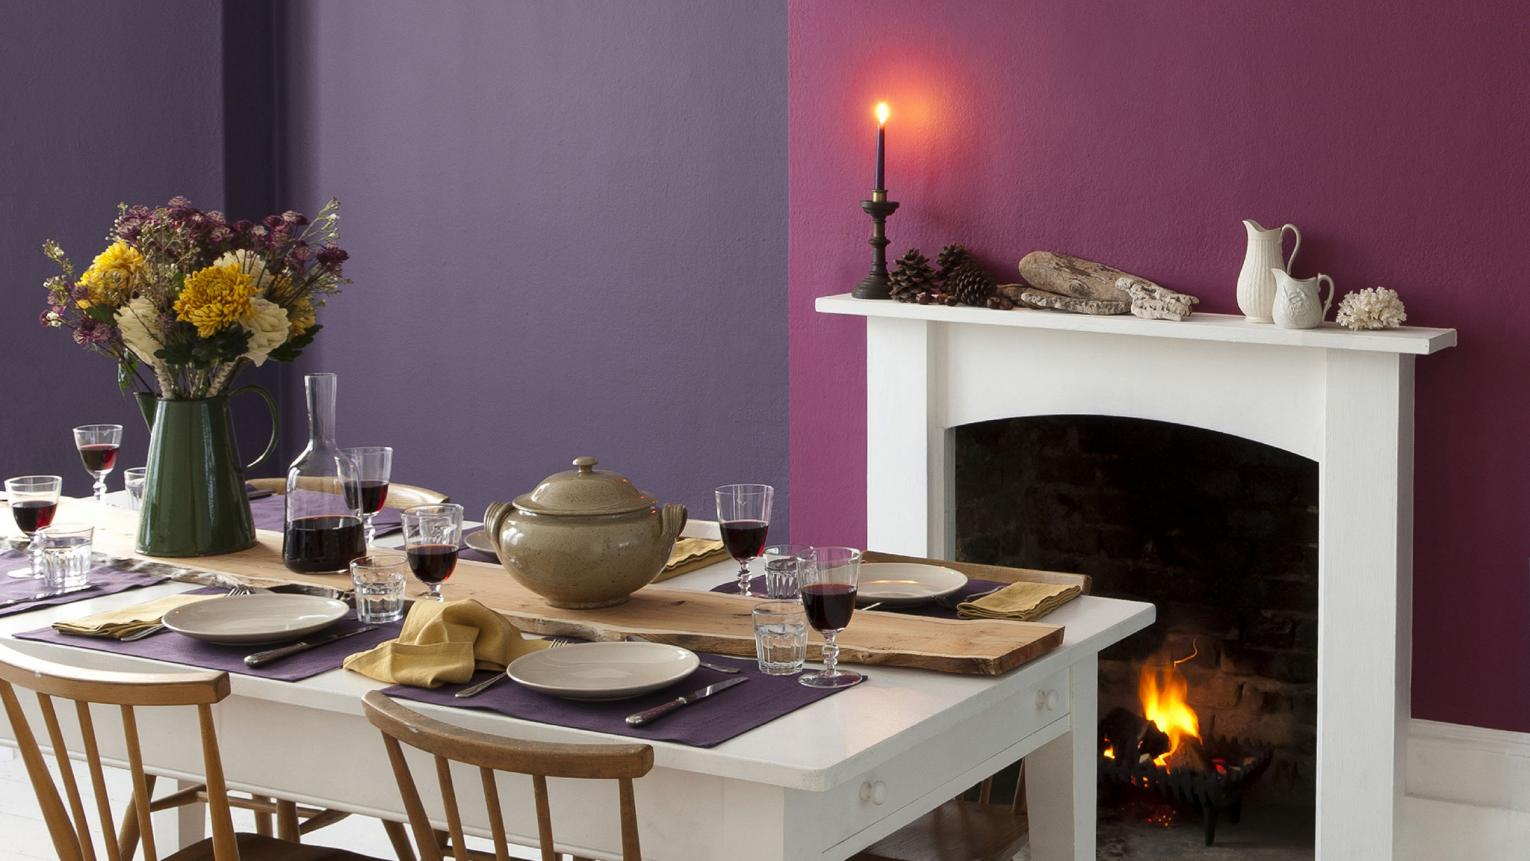 Feeding the family? Entertaining the masses? Use colour to create an intimate dining space that radiates warmth.